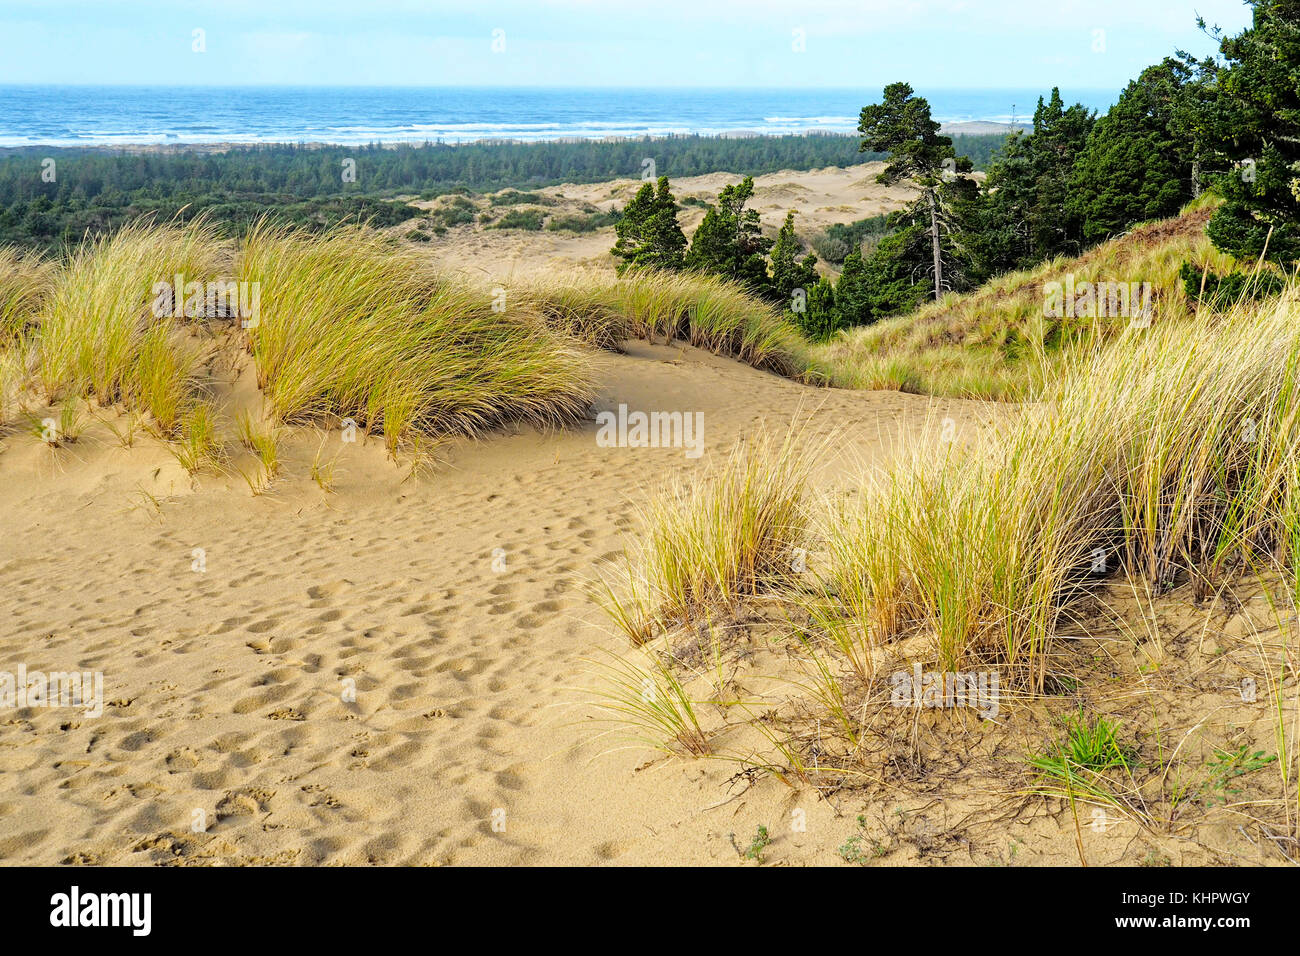 Oregon Dunes National Recreation Area along Pacific Coast Scenic Byway. - Stock Image